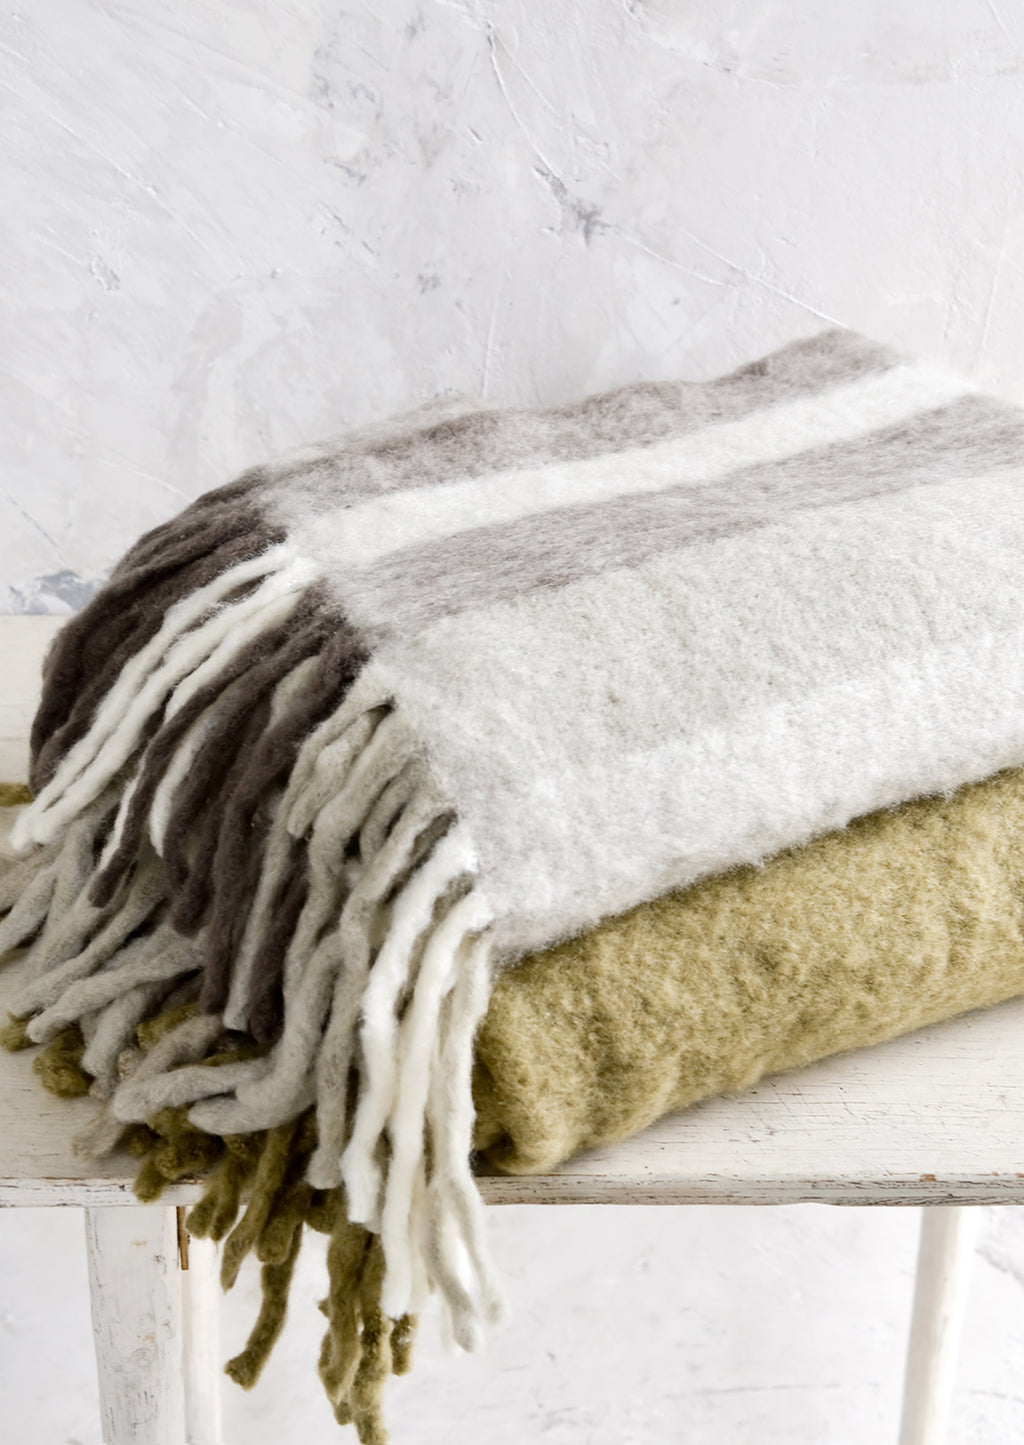 3: Two fuzzy throw blankets, stacked on a table.